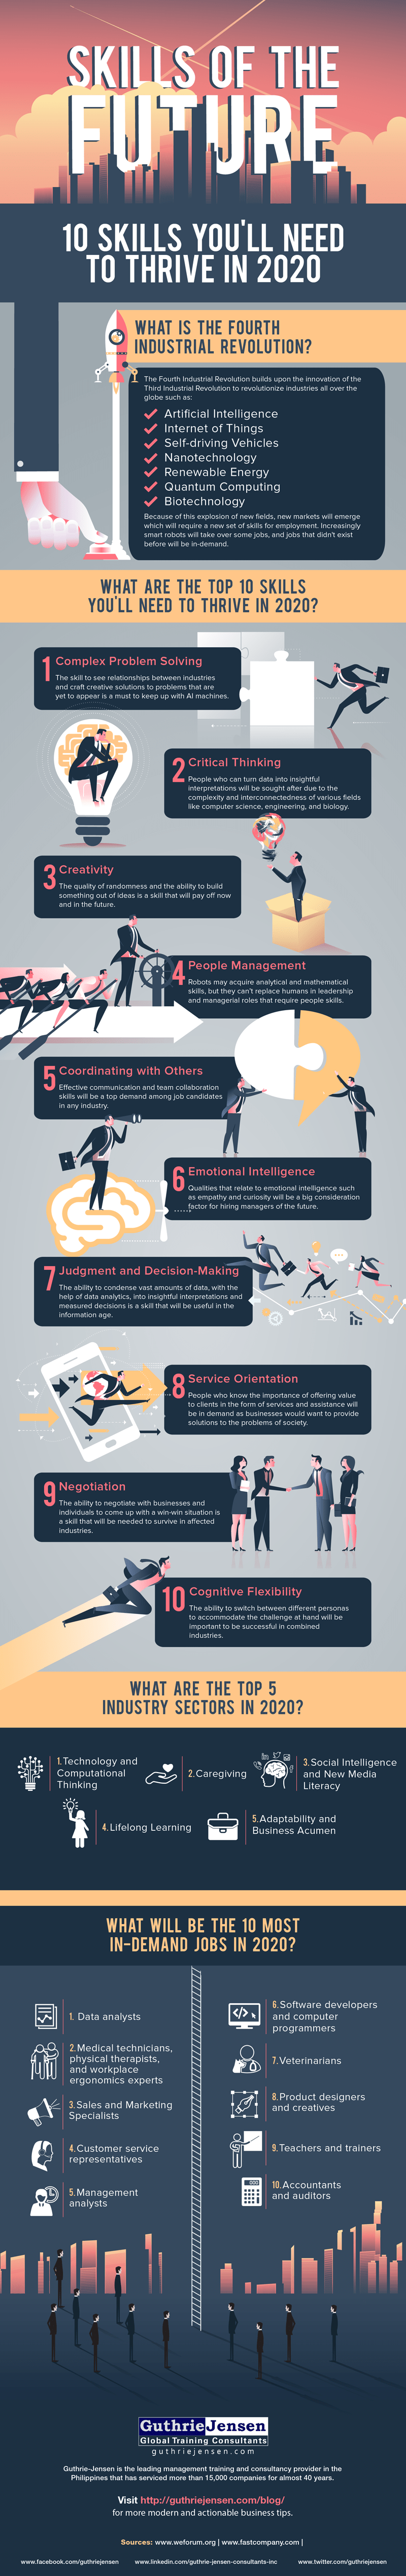 Skills-of-the-Future-10-Skills-Youll-Need-to-Thrive-in-2020-Infographic